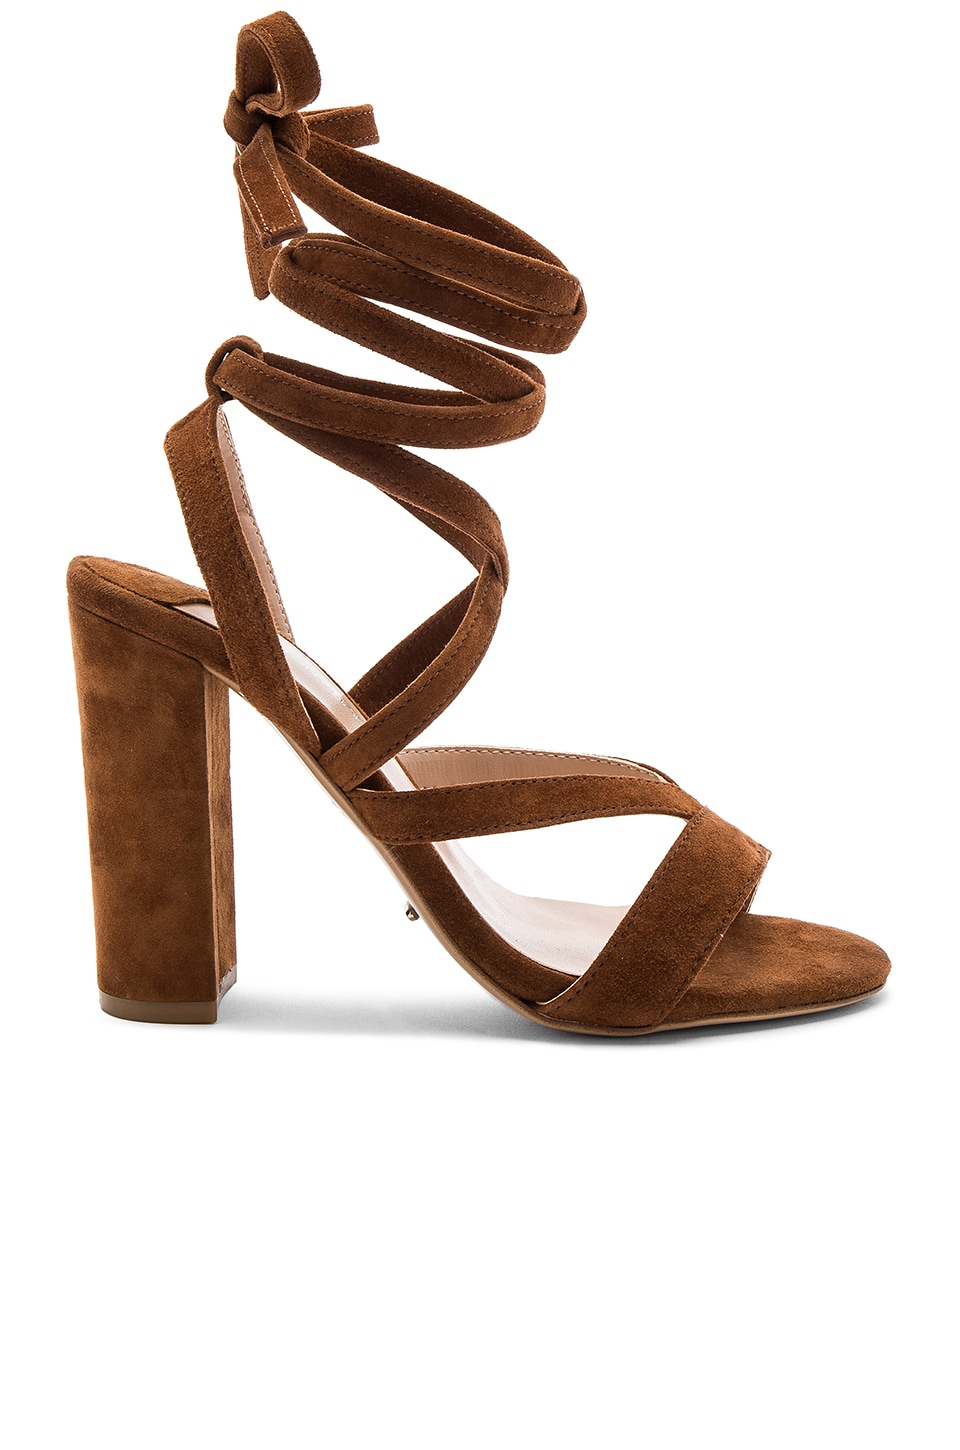 Tony Bianco Kappa Heel in Malt Kid Suede